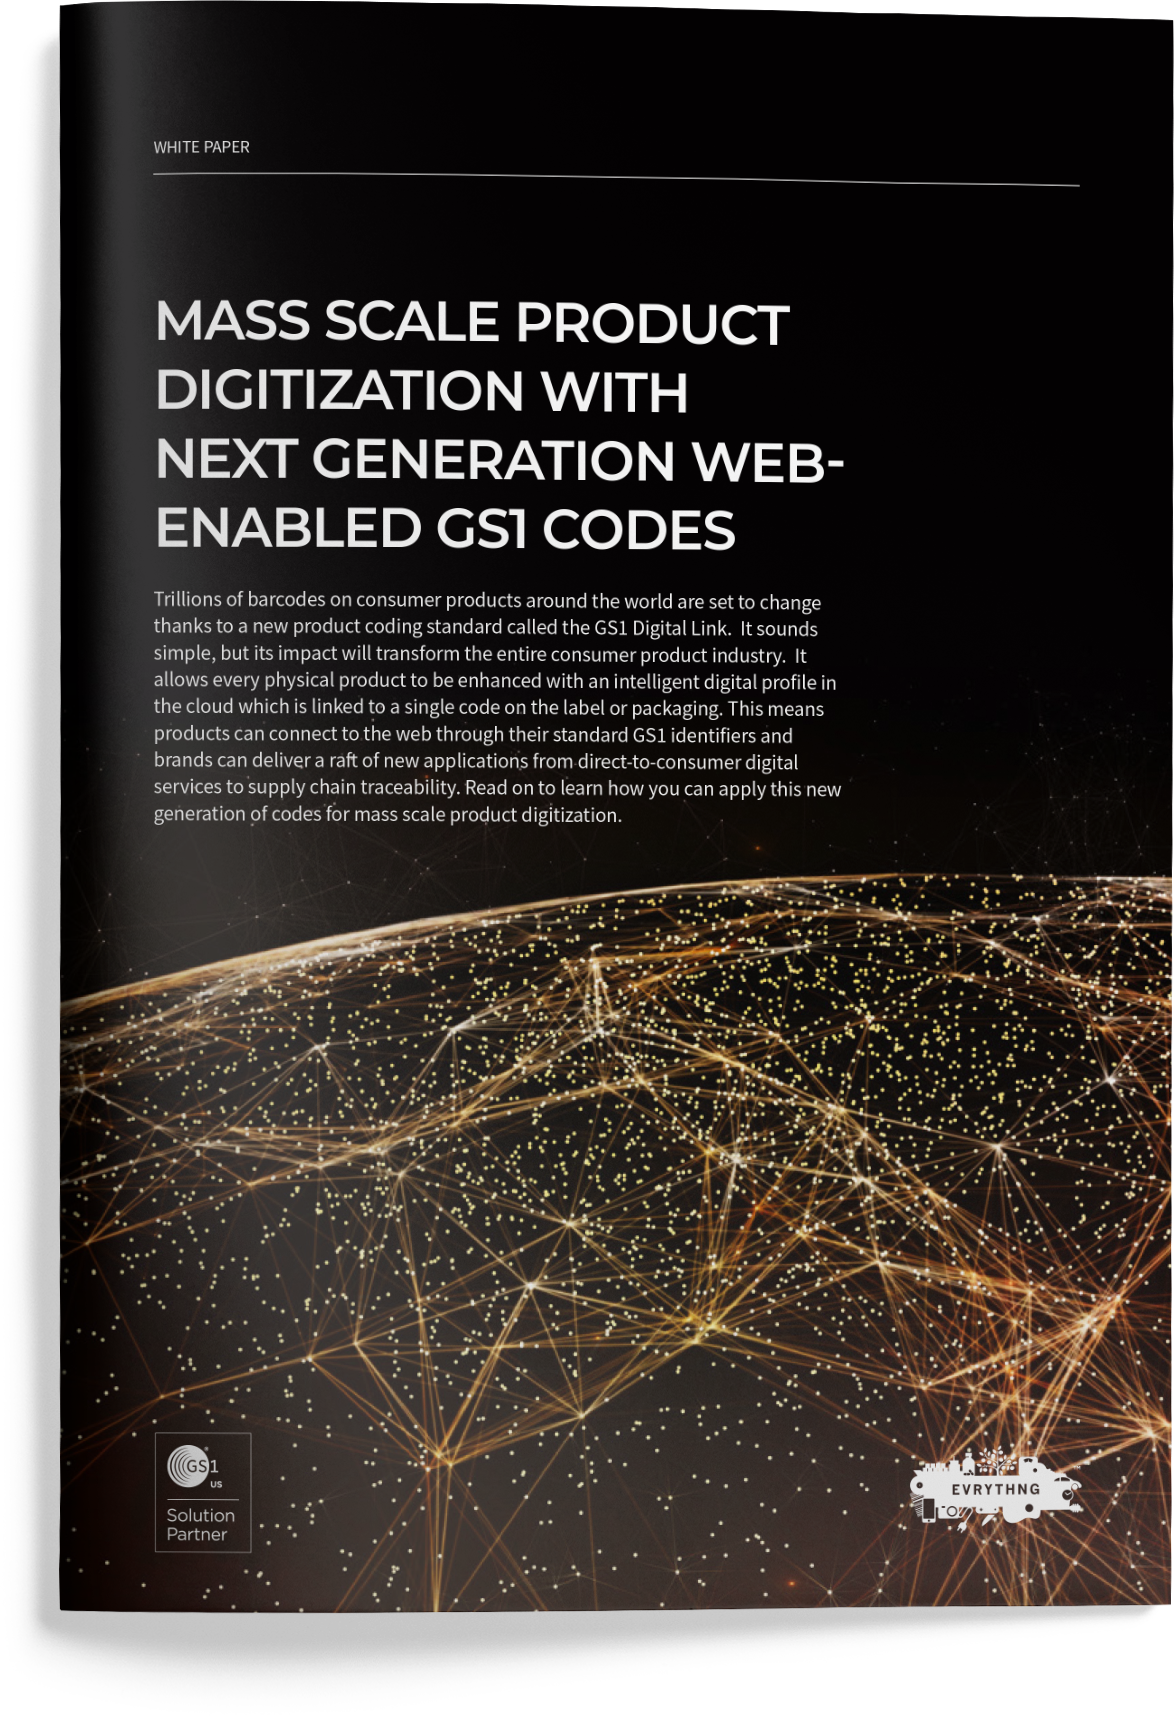 gs1-wp-cover-image